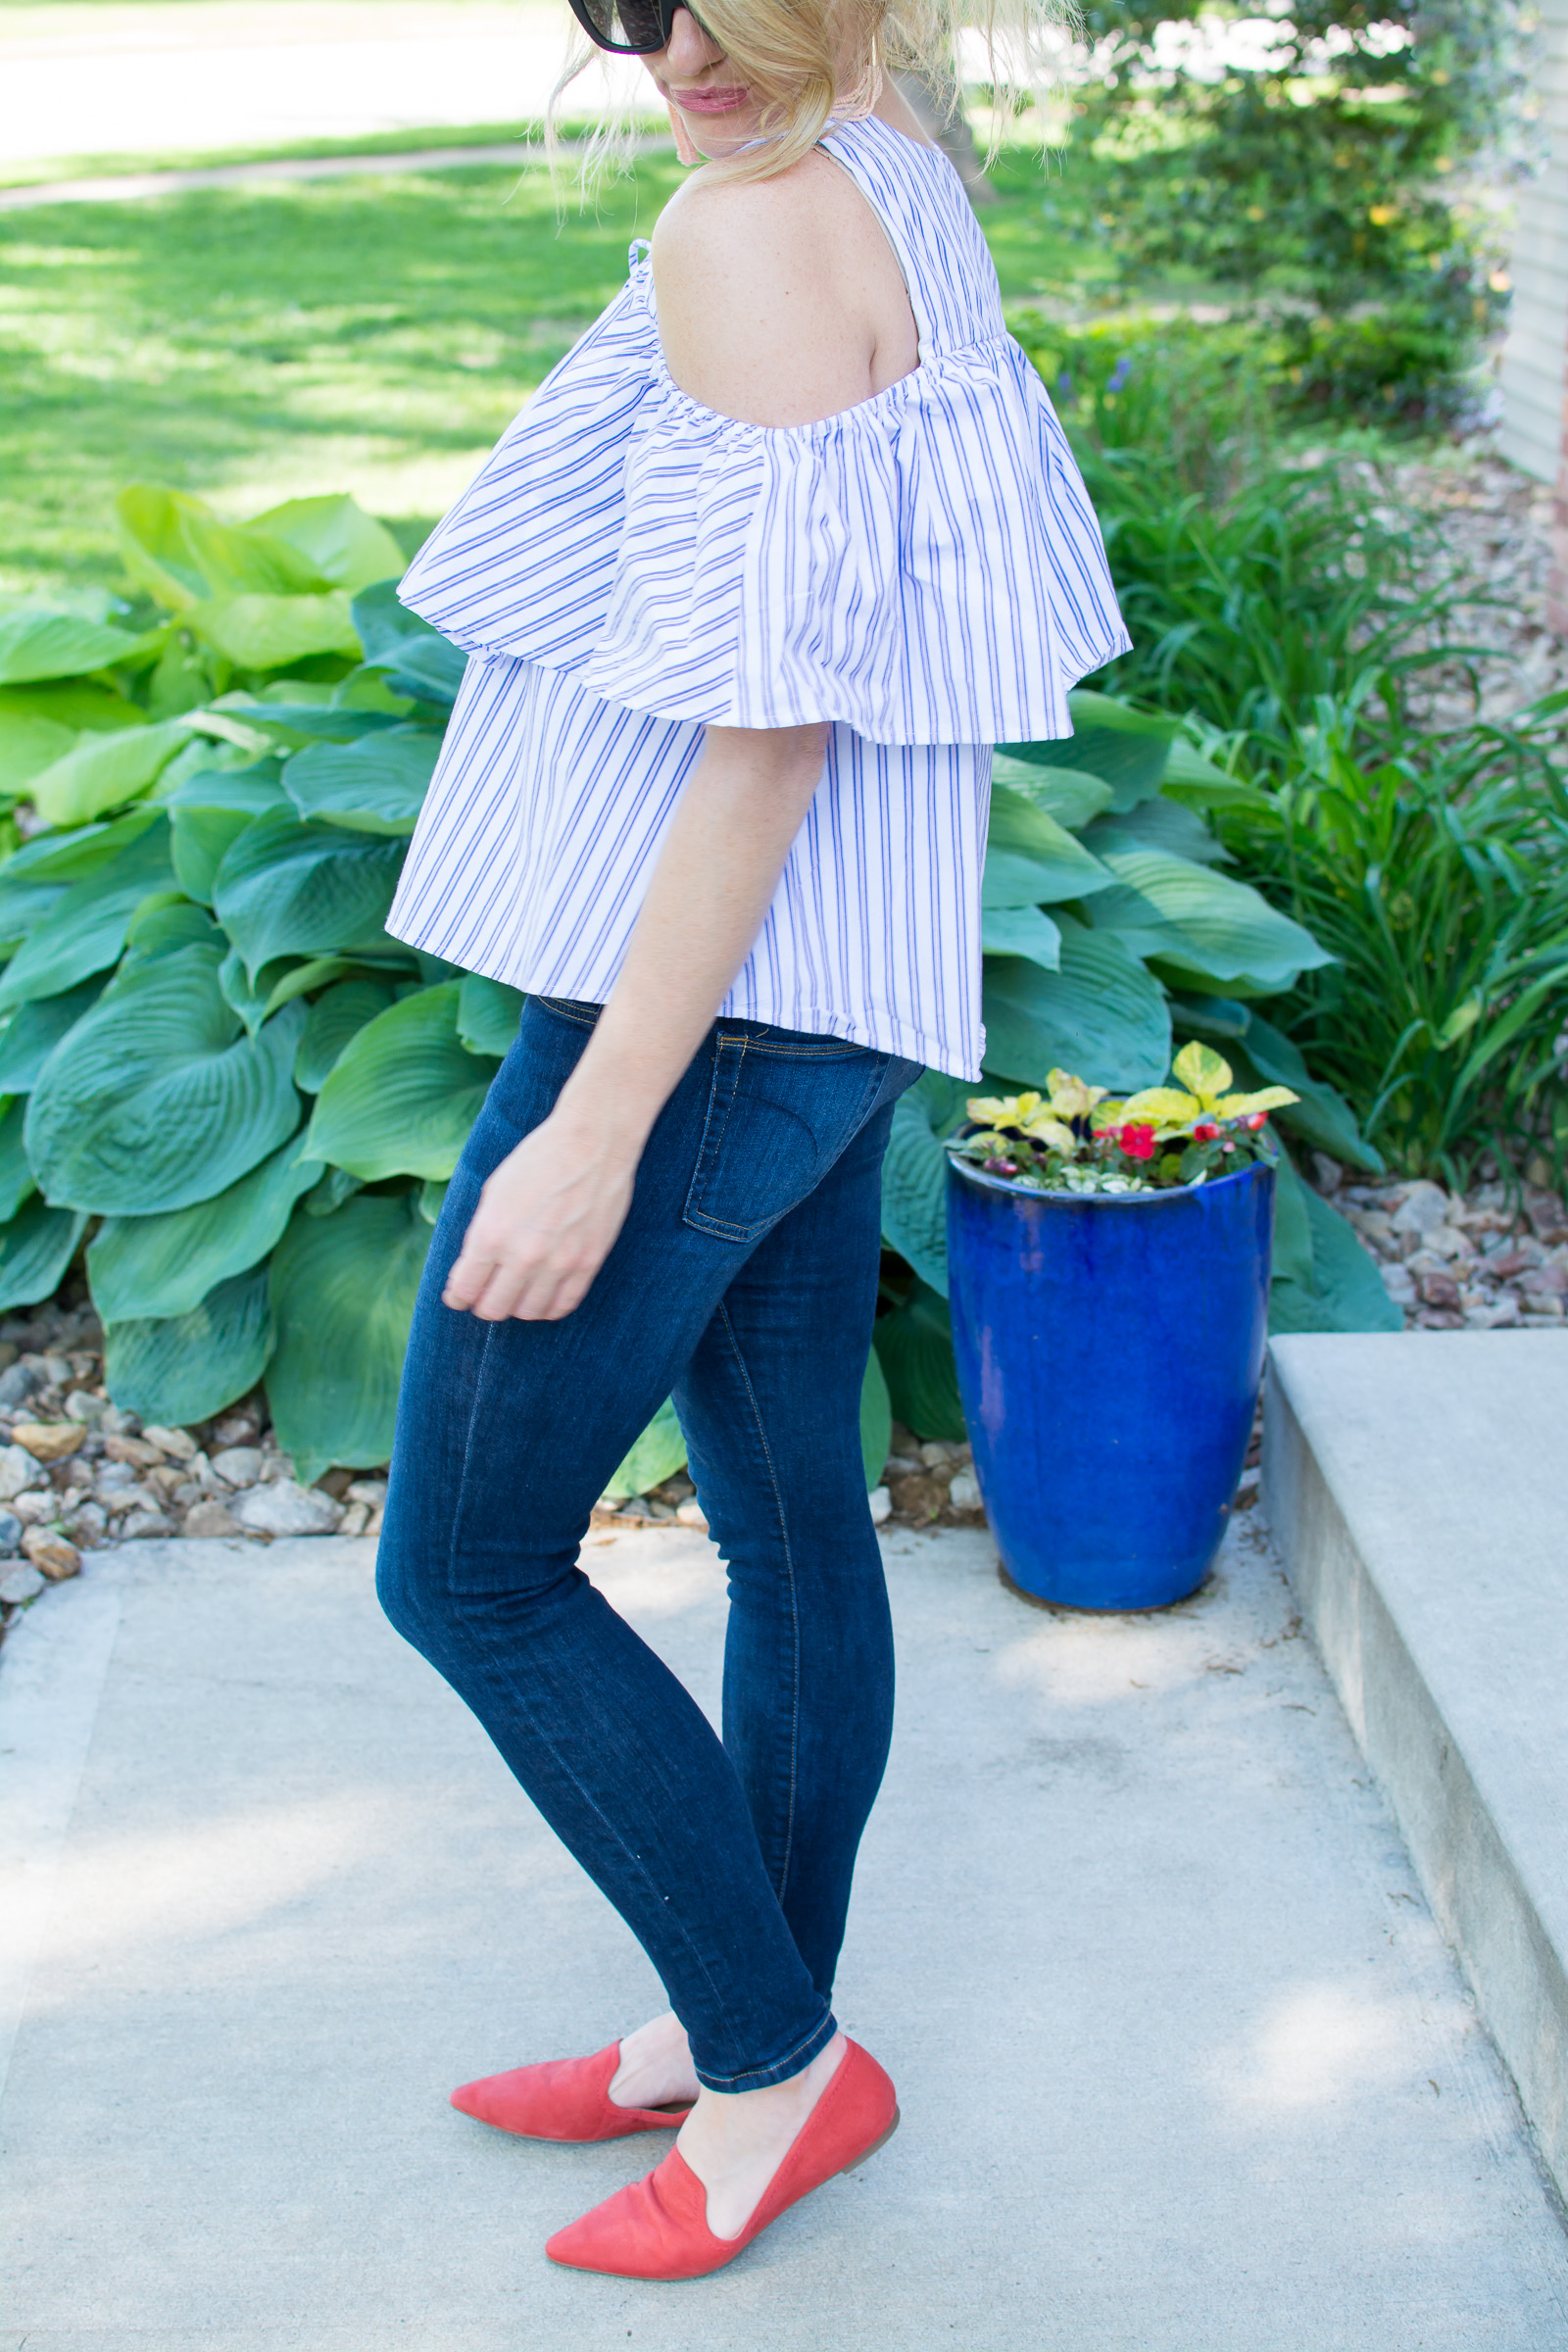 Ruffled Cold-shoulder Blouse for Summer. | Ashley from Le Stylo Rouge